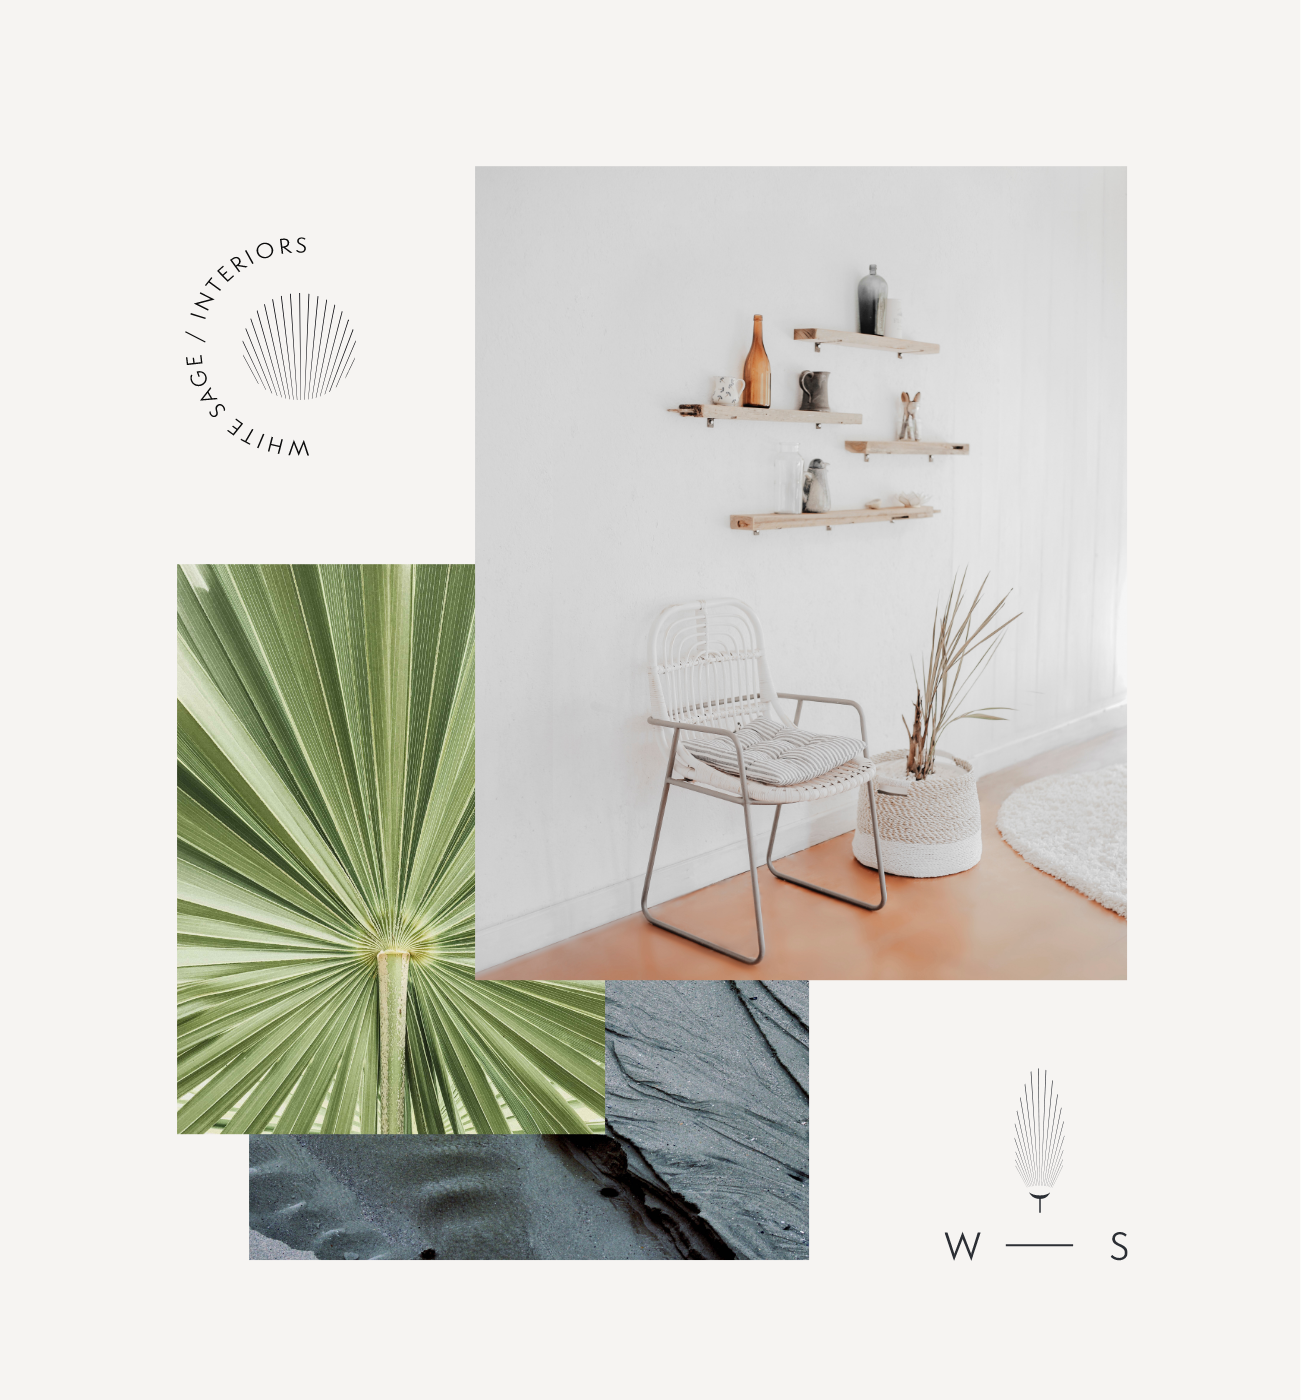 White_Sage_Interiors_Mood_Board@2x.png